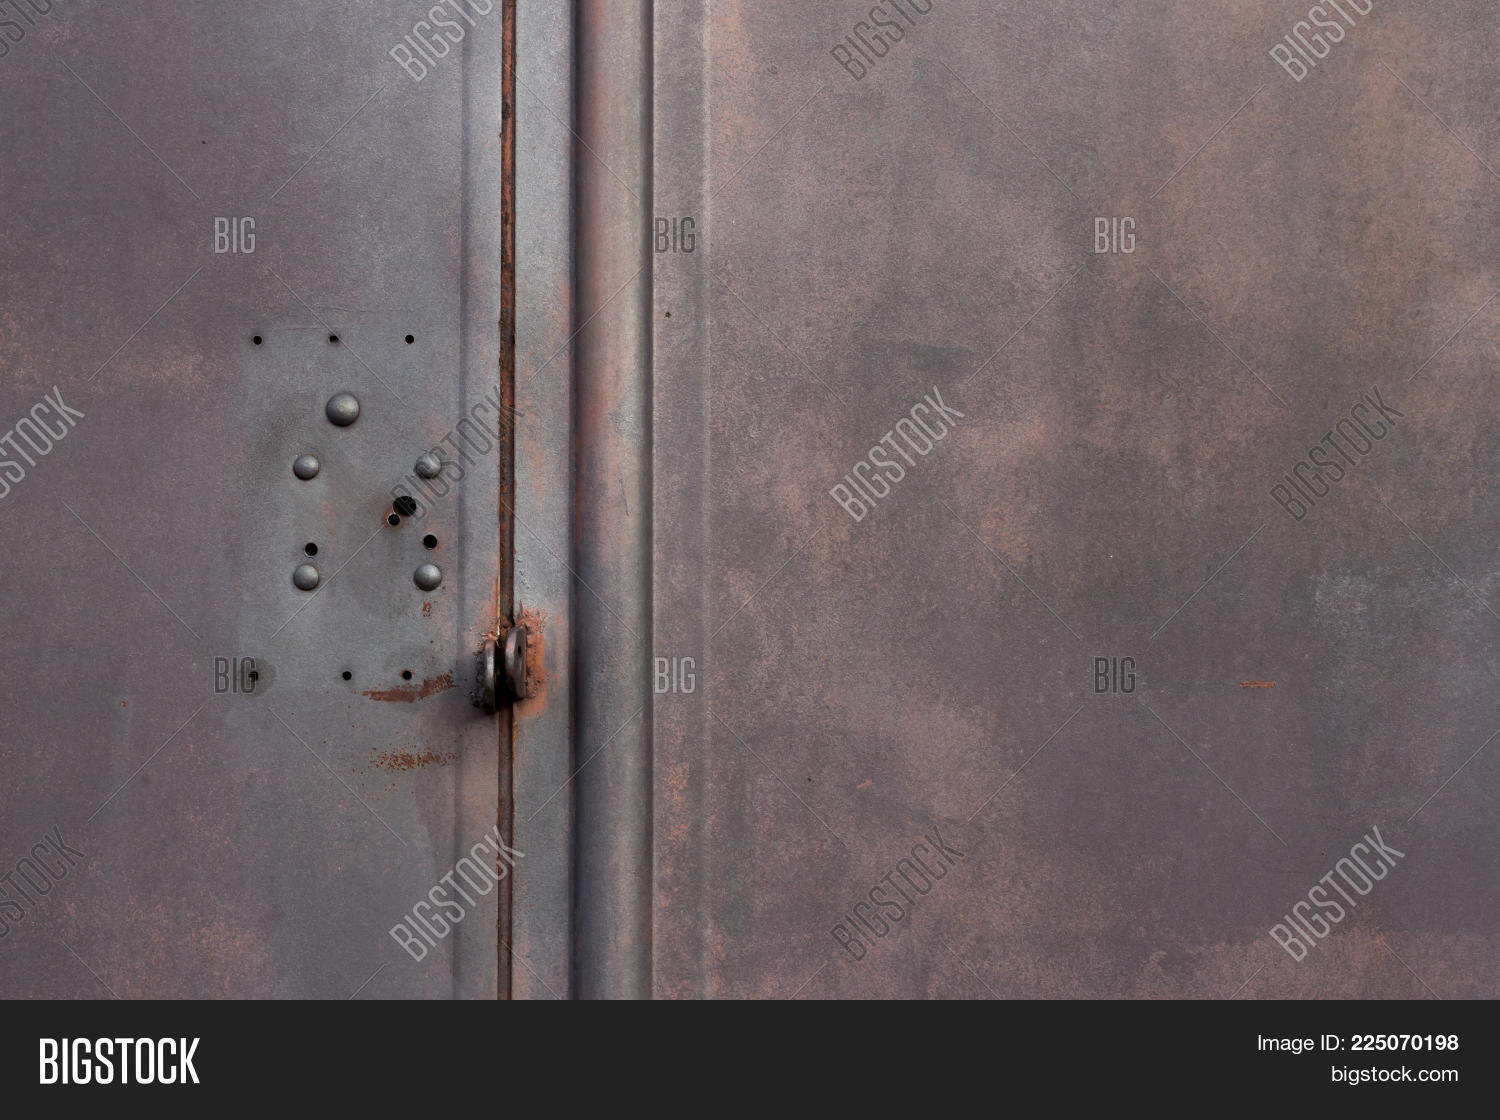 Dark Grey Background Metallic Image Photo Bigstock